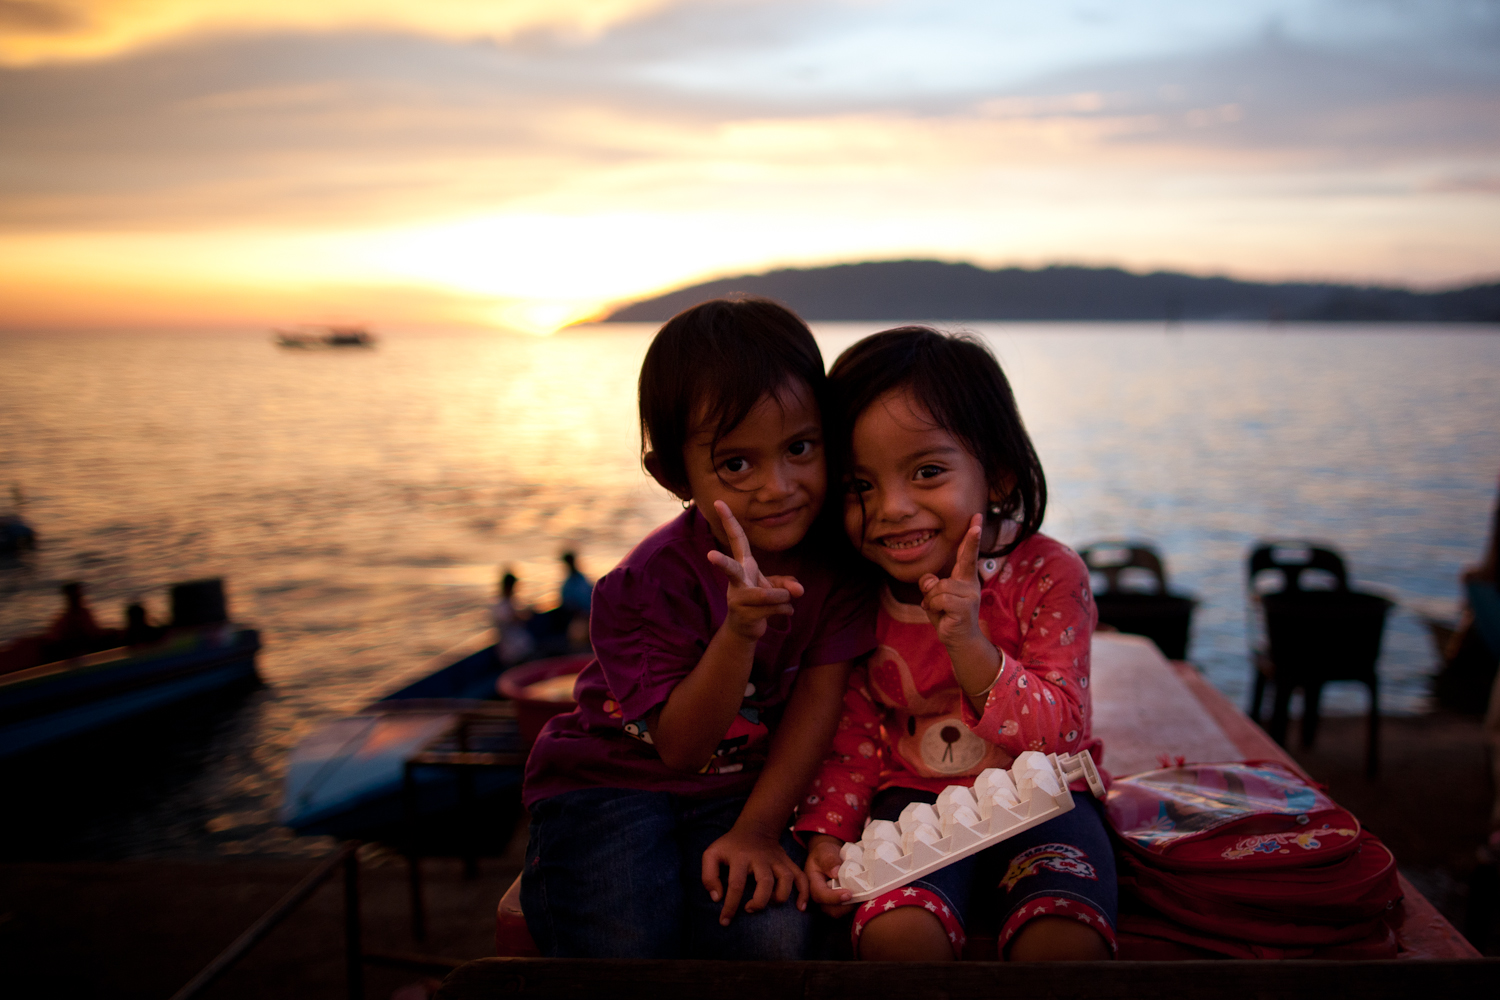 Two children doing peace signs by the sea at sunset